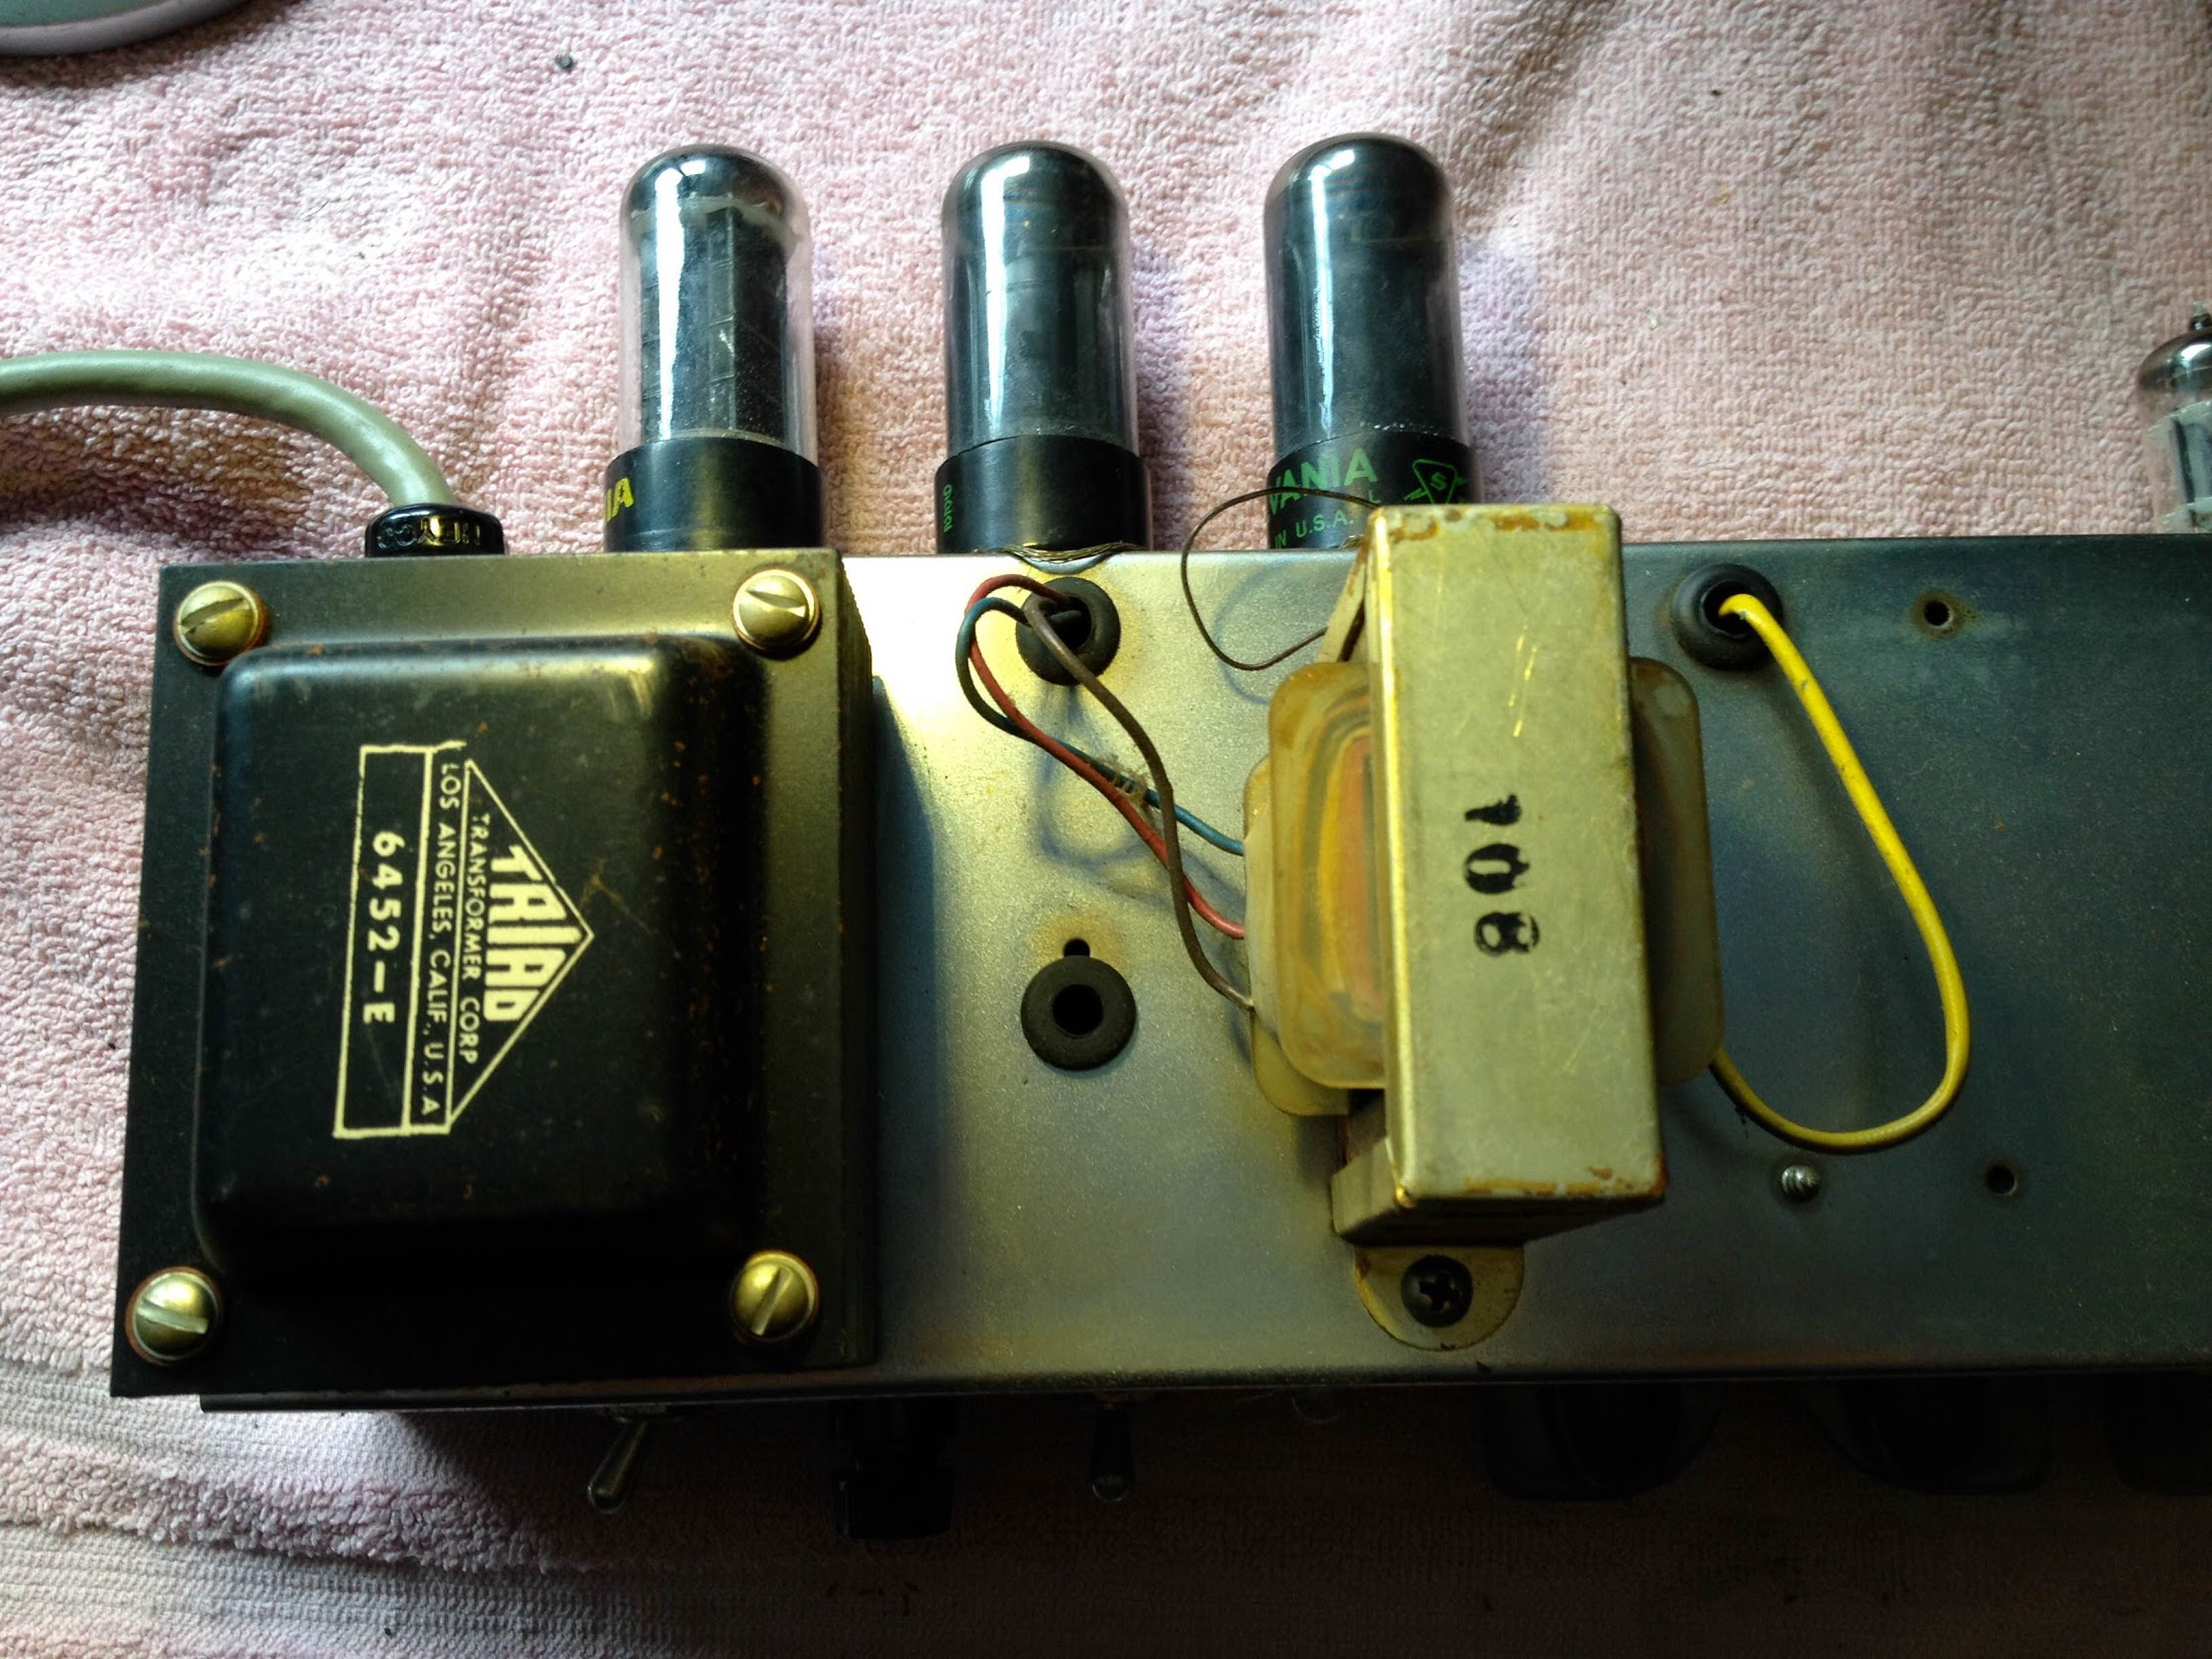 How The 5e3 Works Original Stratocaster Wiring Diagram Tube Chart Inside Cab See This To Make A Reproduction